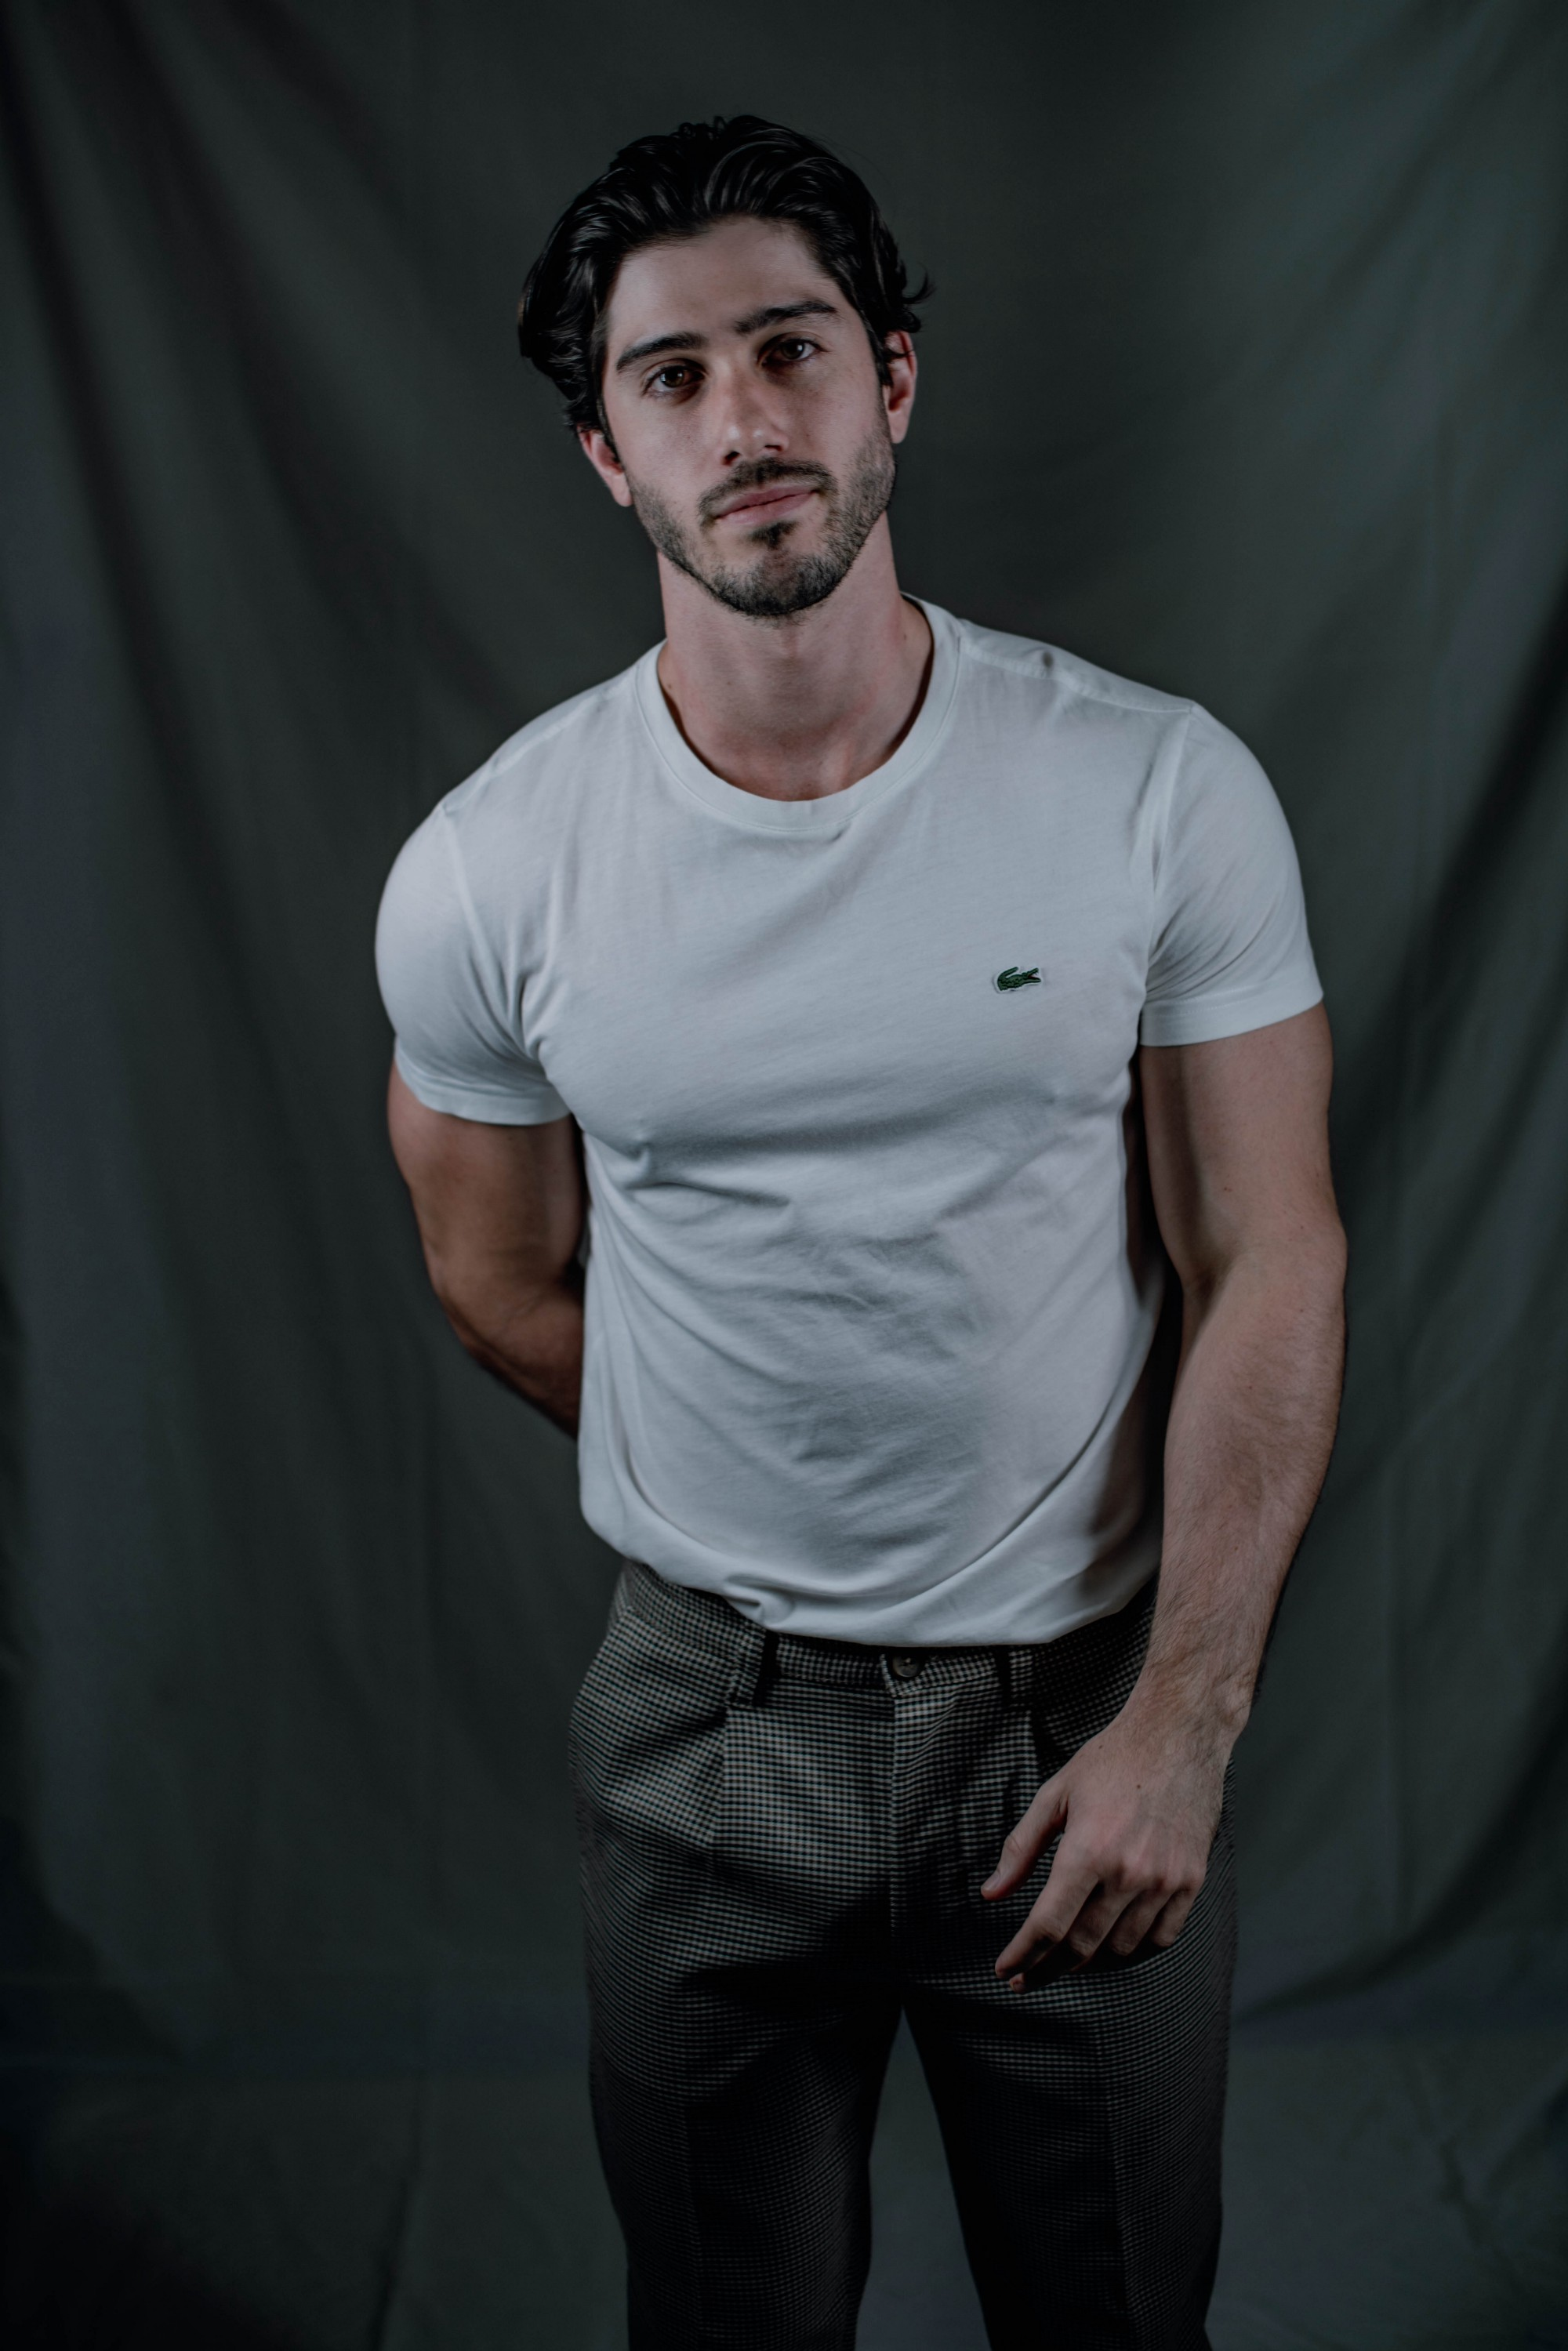 A lightly bearded man in a white T-shirt stands leaning slightly forward. His pecs, biceps, and shoulder muscles show nicely.